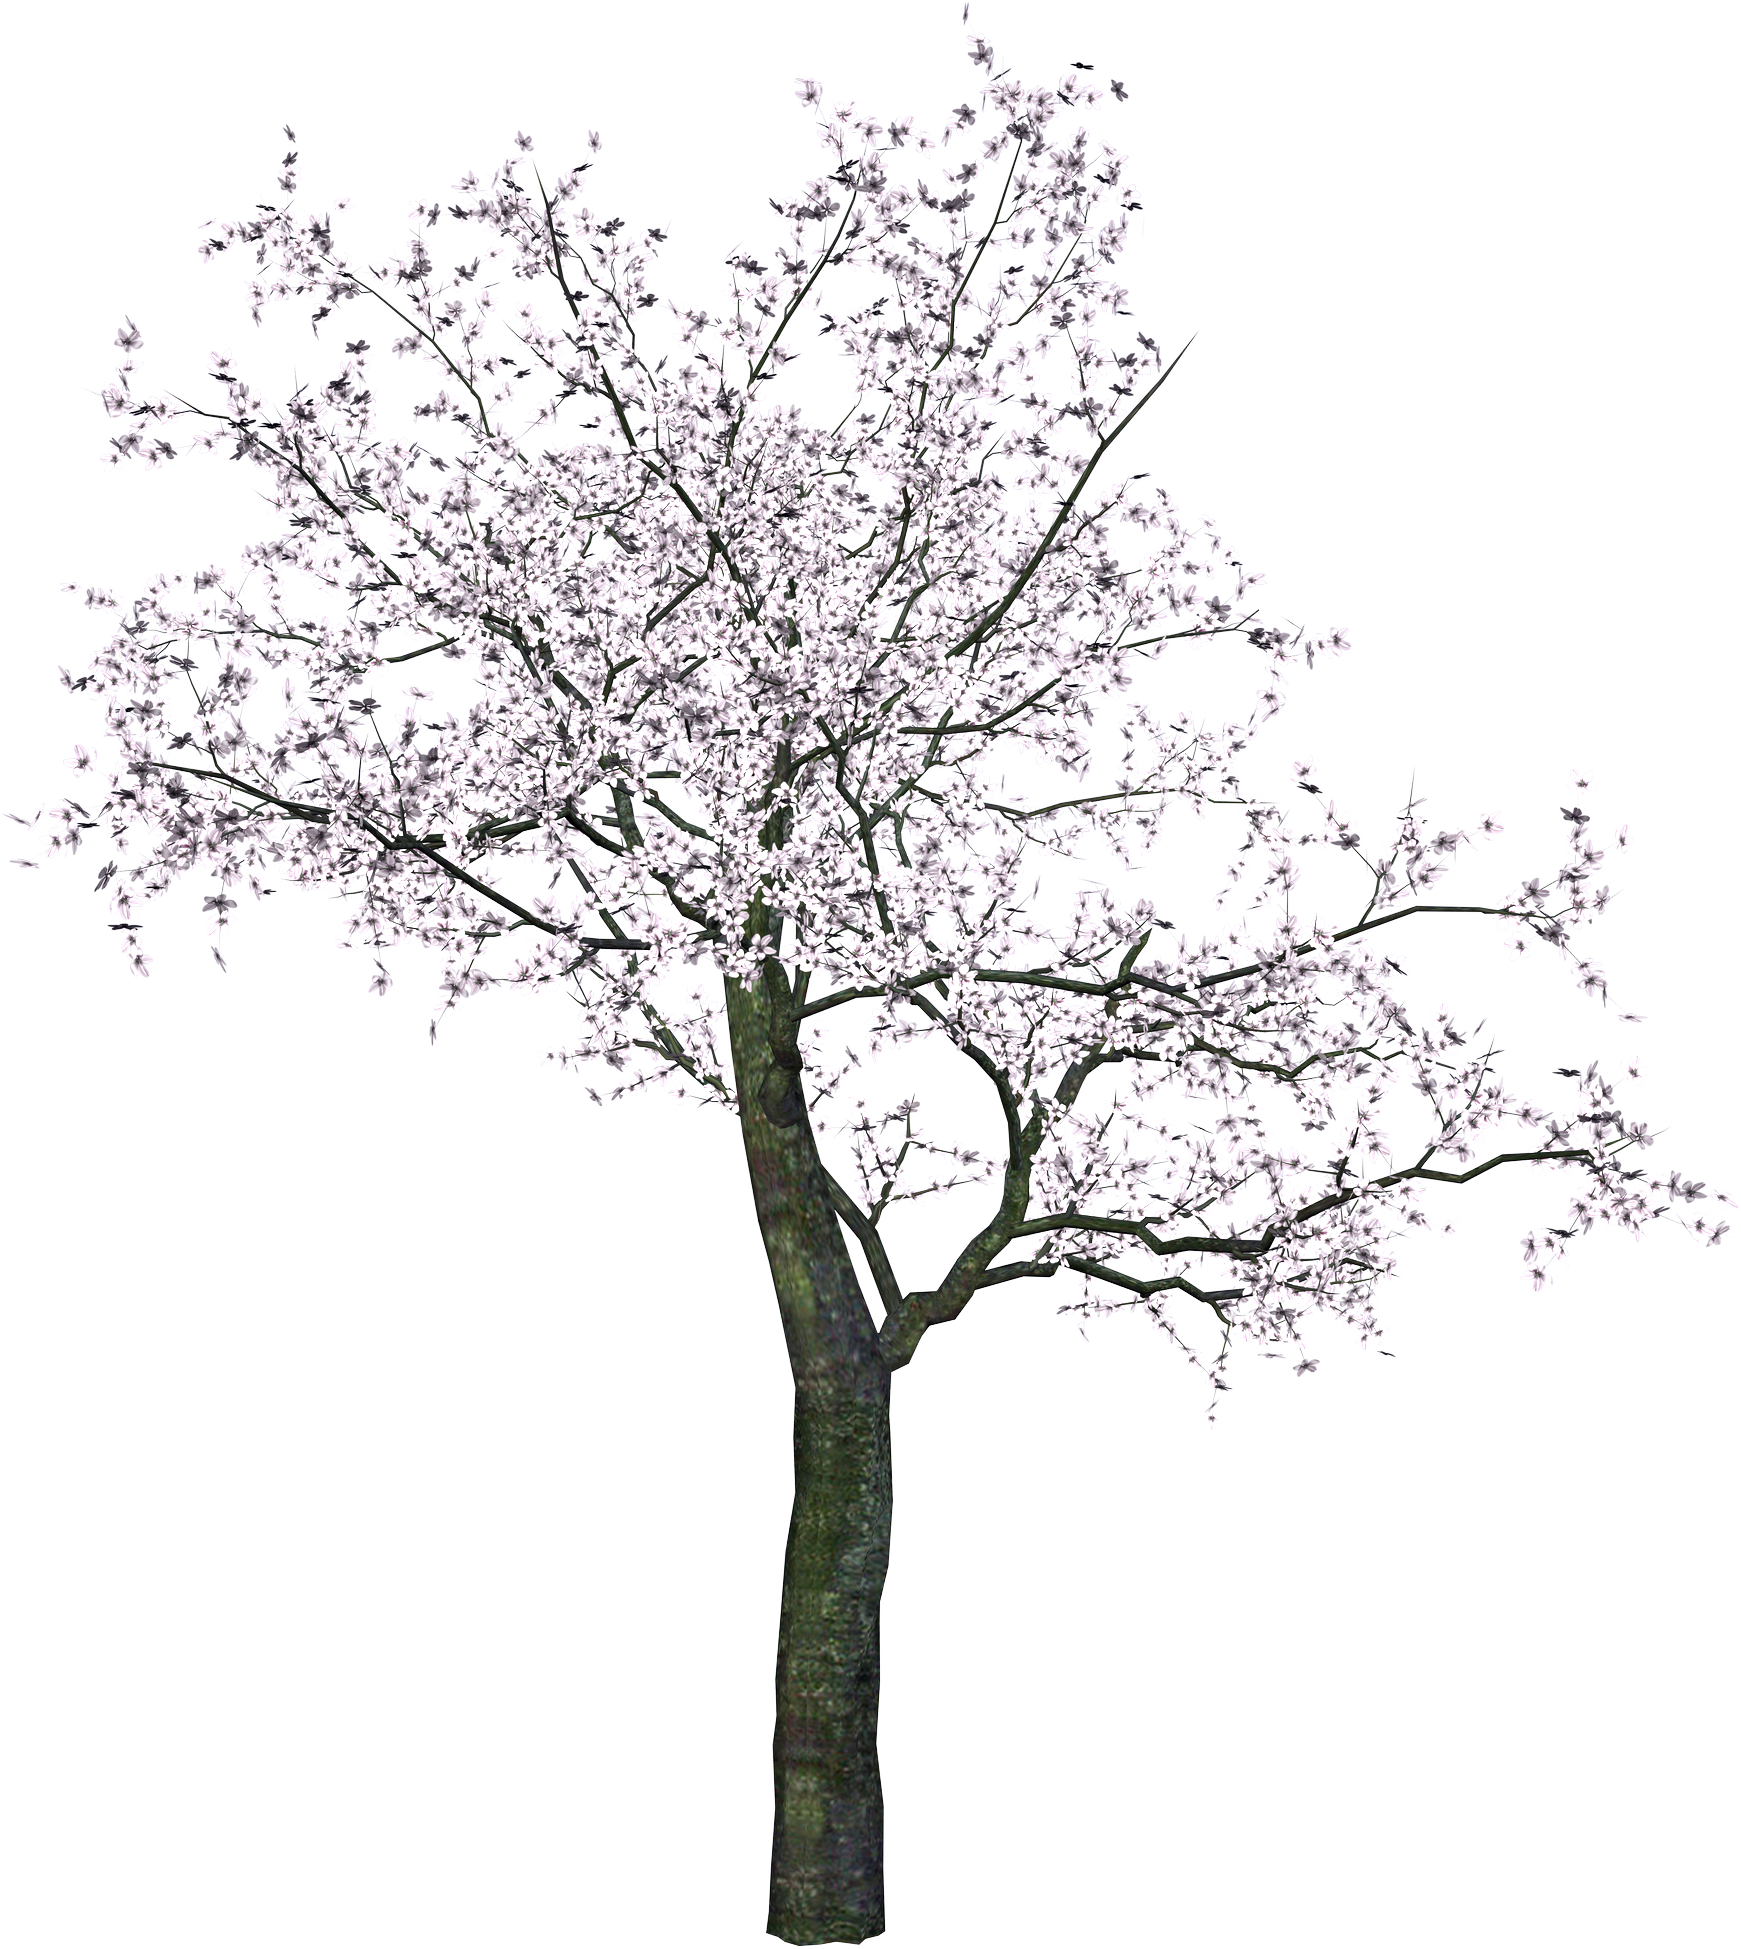 Cherry Blossom Tree Black And White: Cherry Blossom Tree Png Black And White & Free Cherry